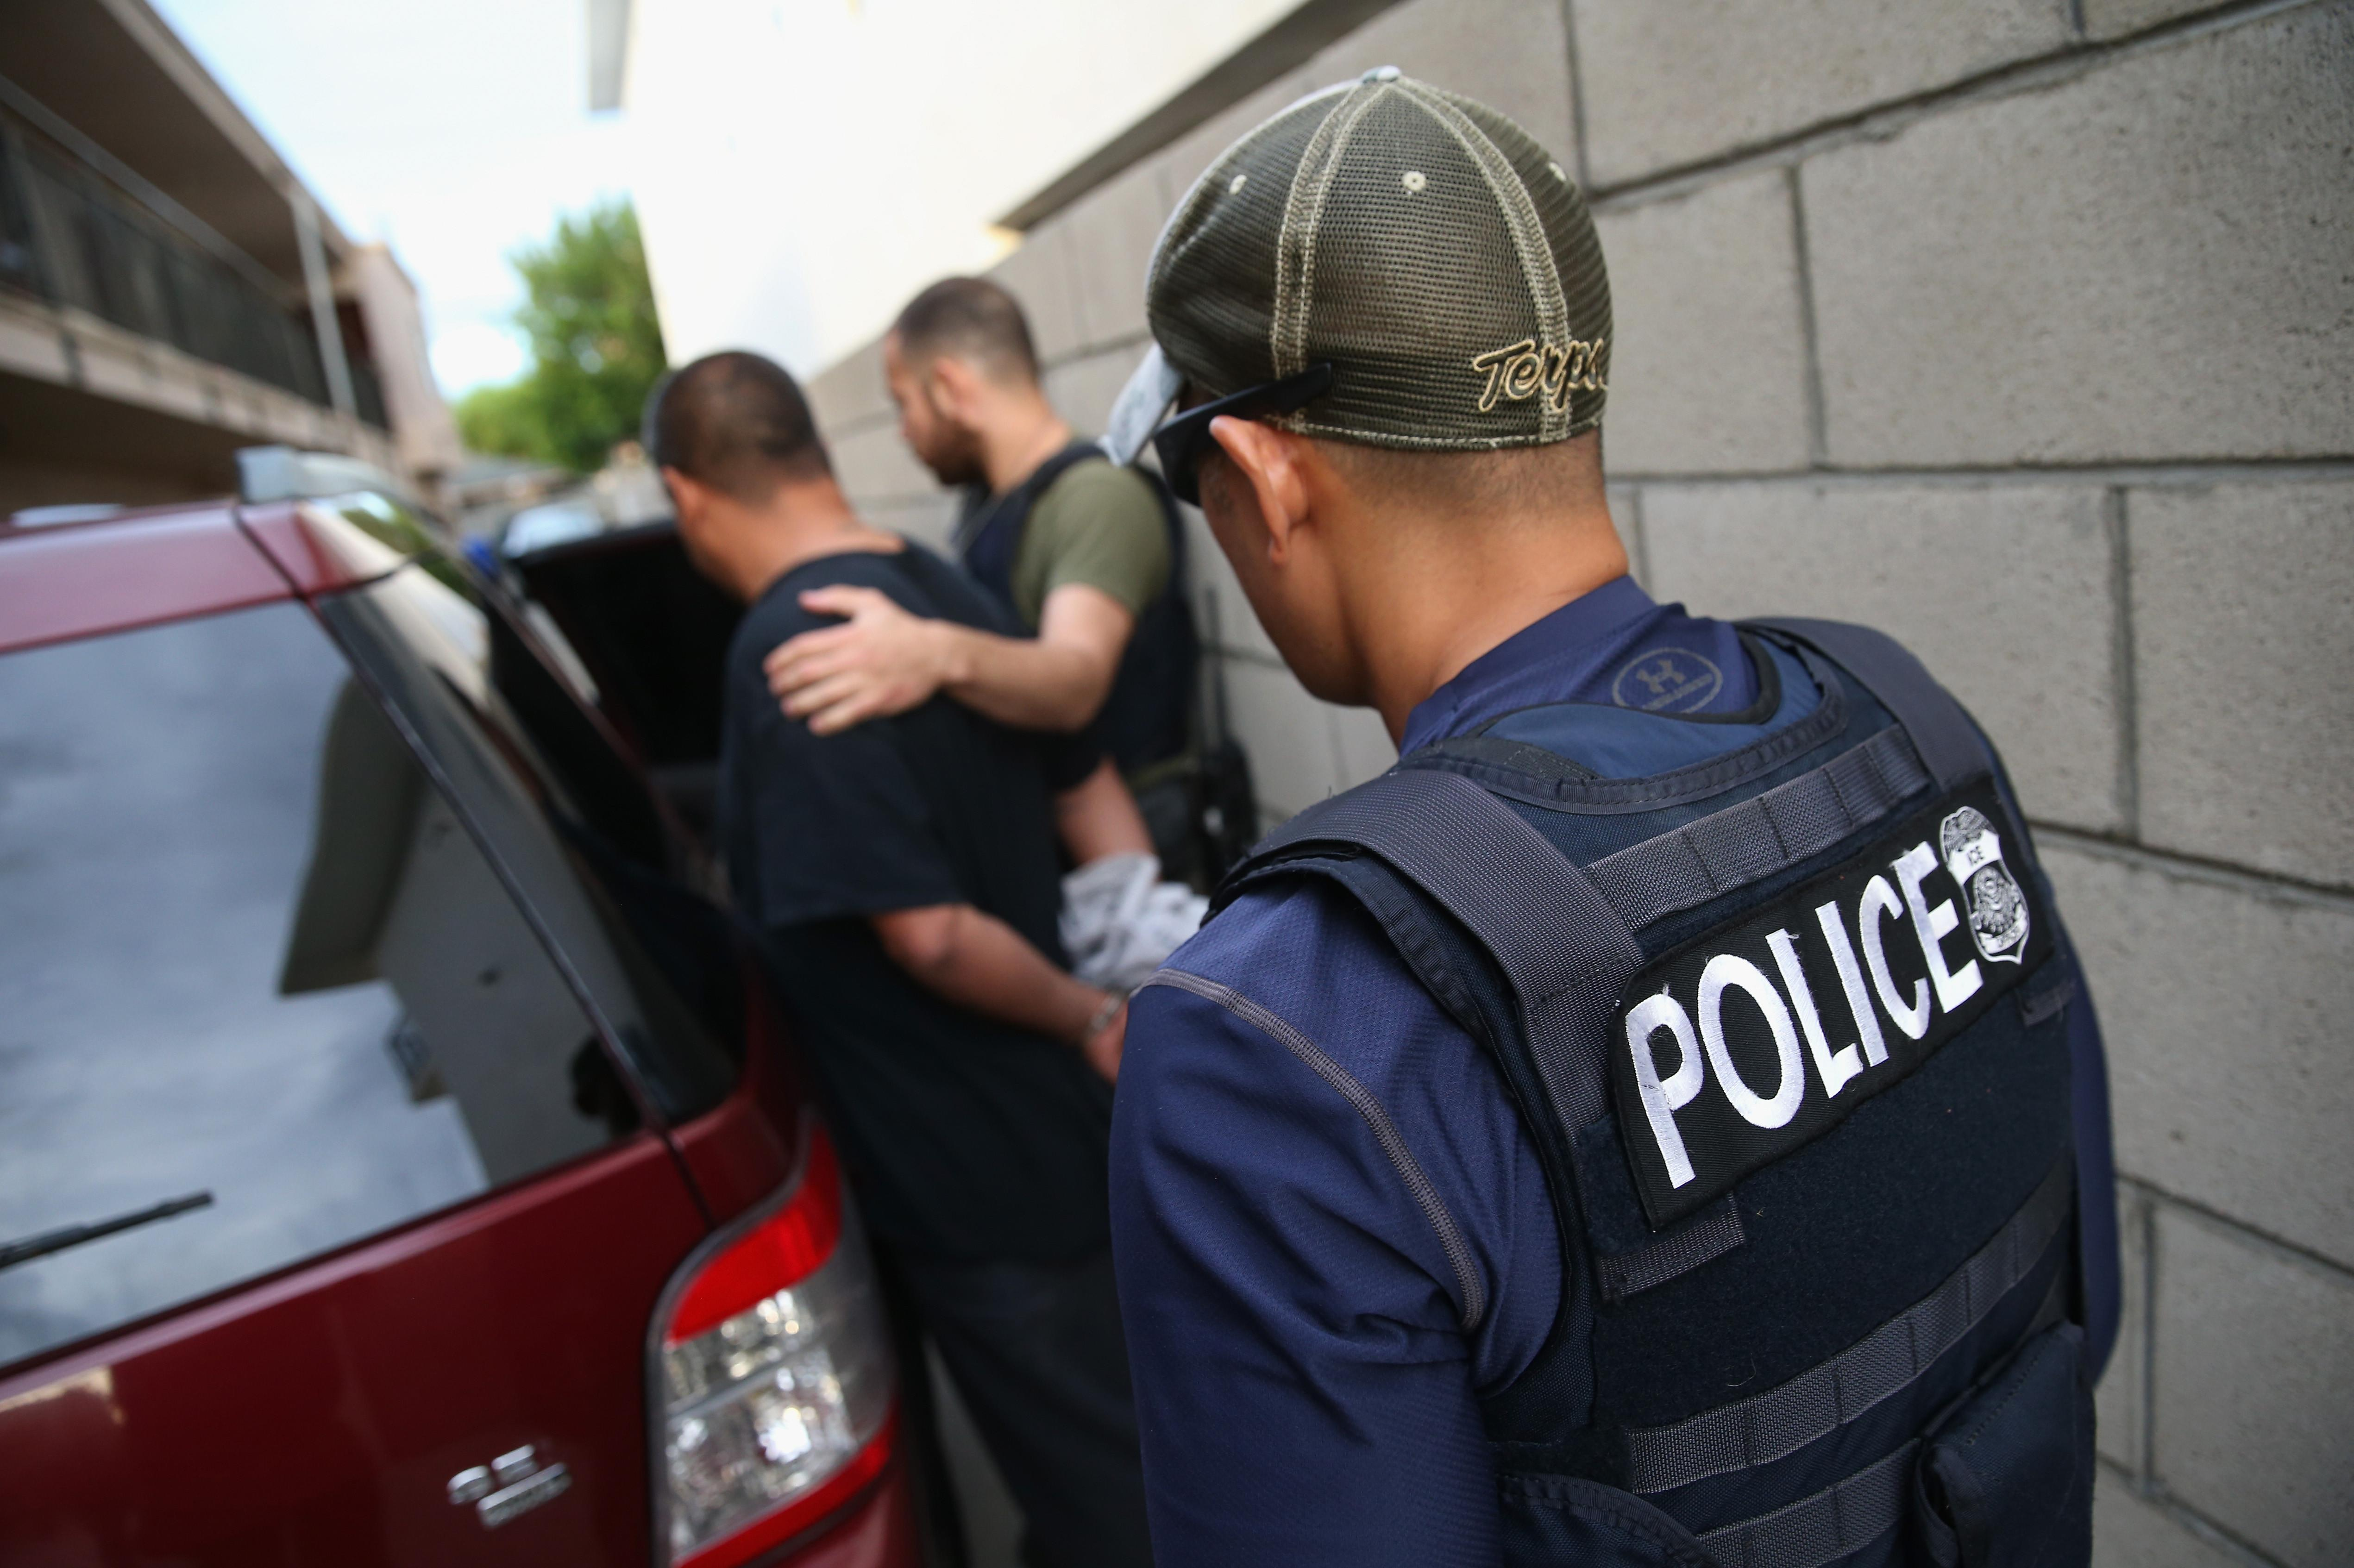 Agent Fake fake ice agent who performed 'fugitive apprehension' said he